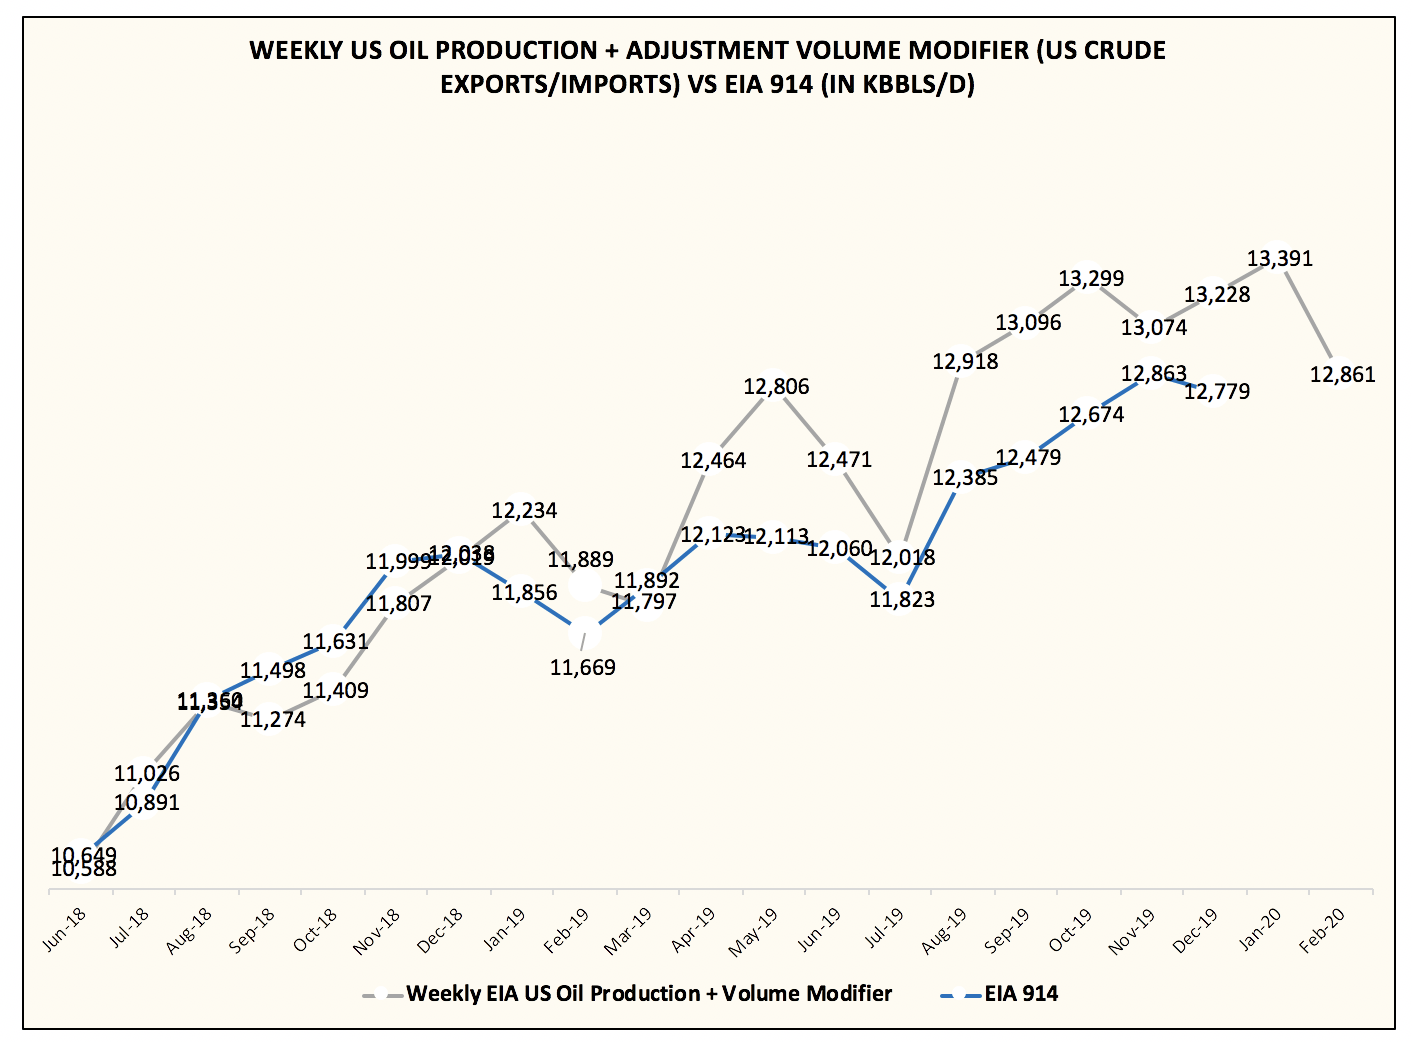 U.S. Oil Production Disappoints To The Downside In December | Seeking Alpha